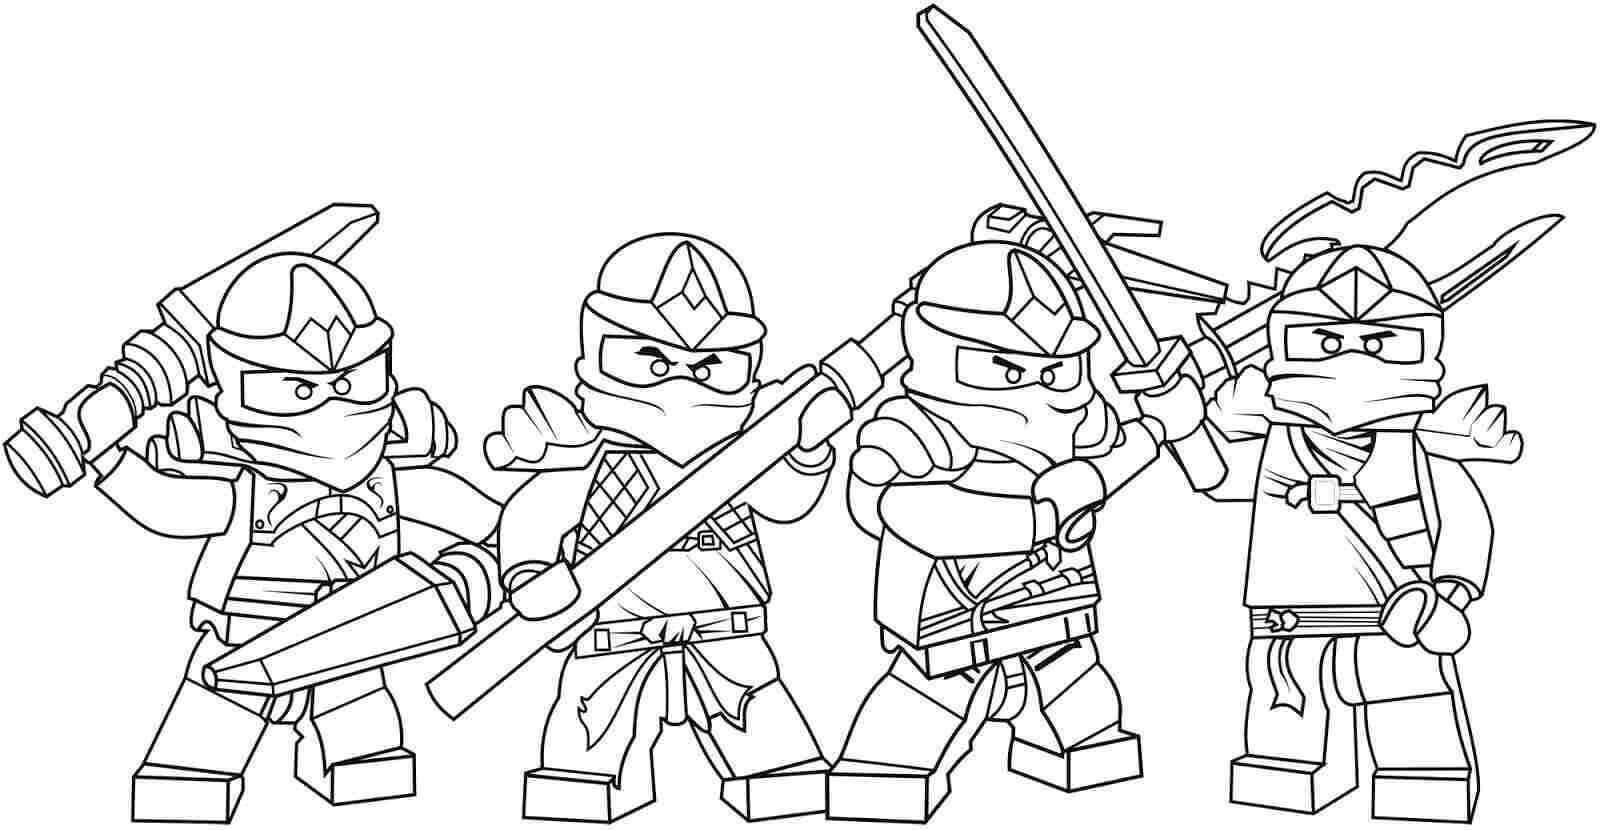 30 Free Printable Lego Ninjago Coloring Pages Lego Coloring Pages Ninjago Coloring Pages Lego Colo In 2021 Ninjago Coloring Pages Lego Coloring Pages Cat Coloring Book